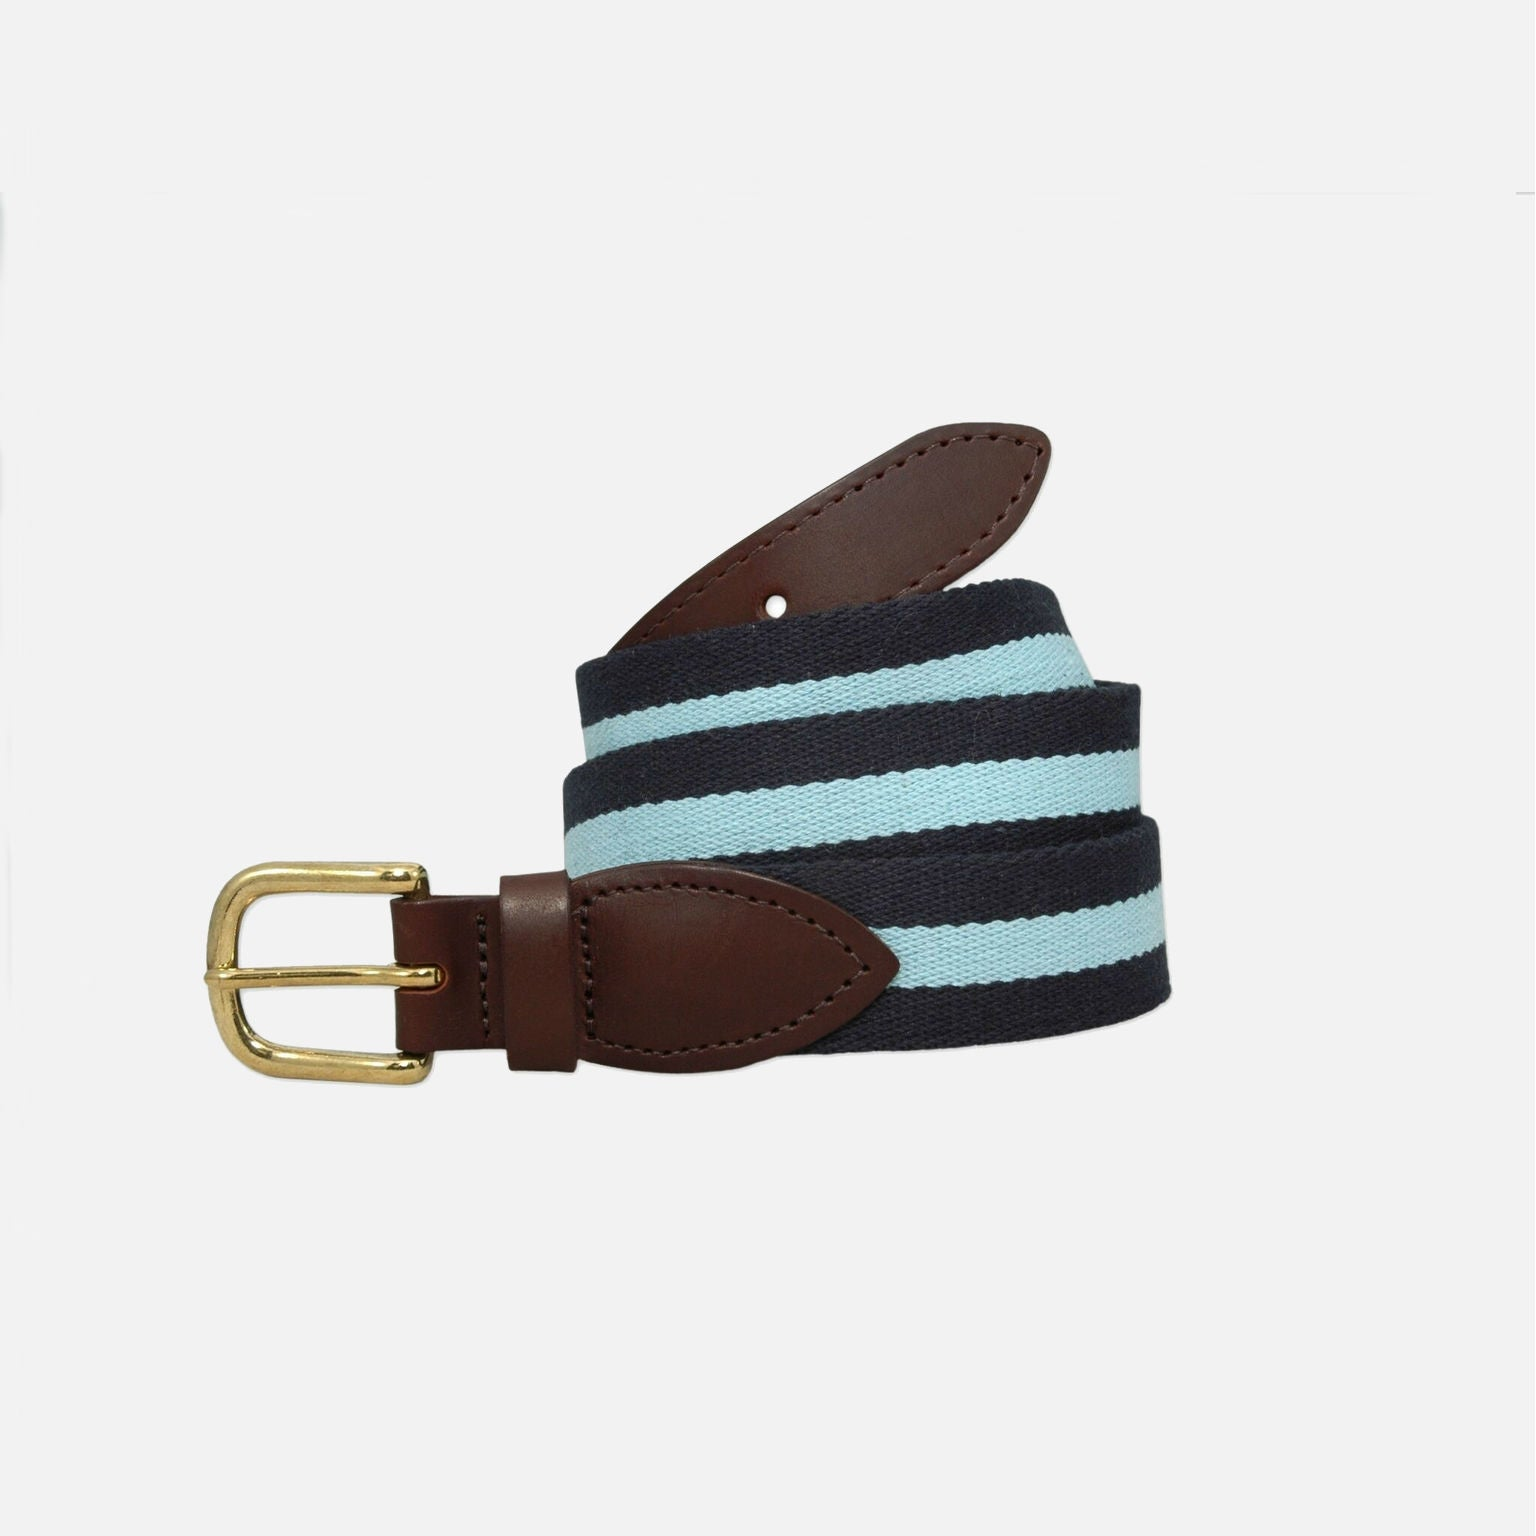 YRI Men's Belt - Navy With Light Blue Surcingle Stripe